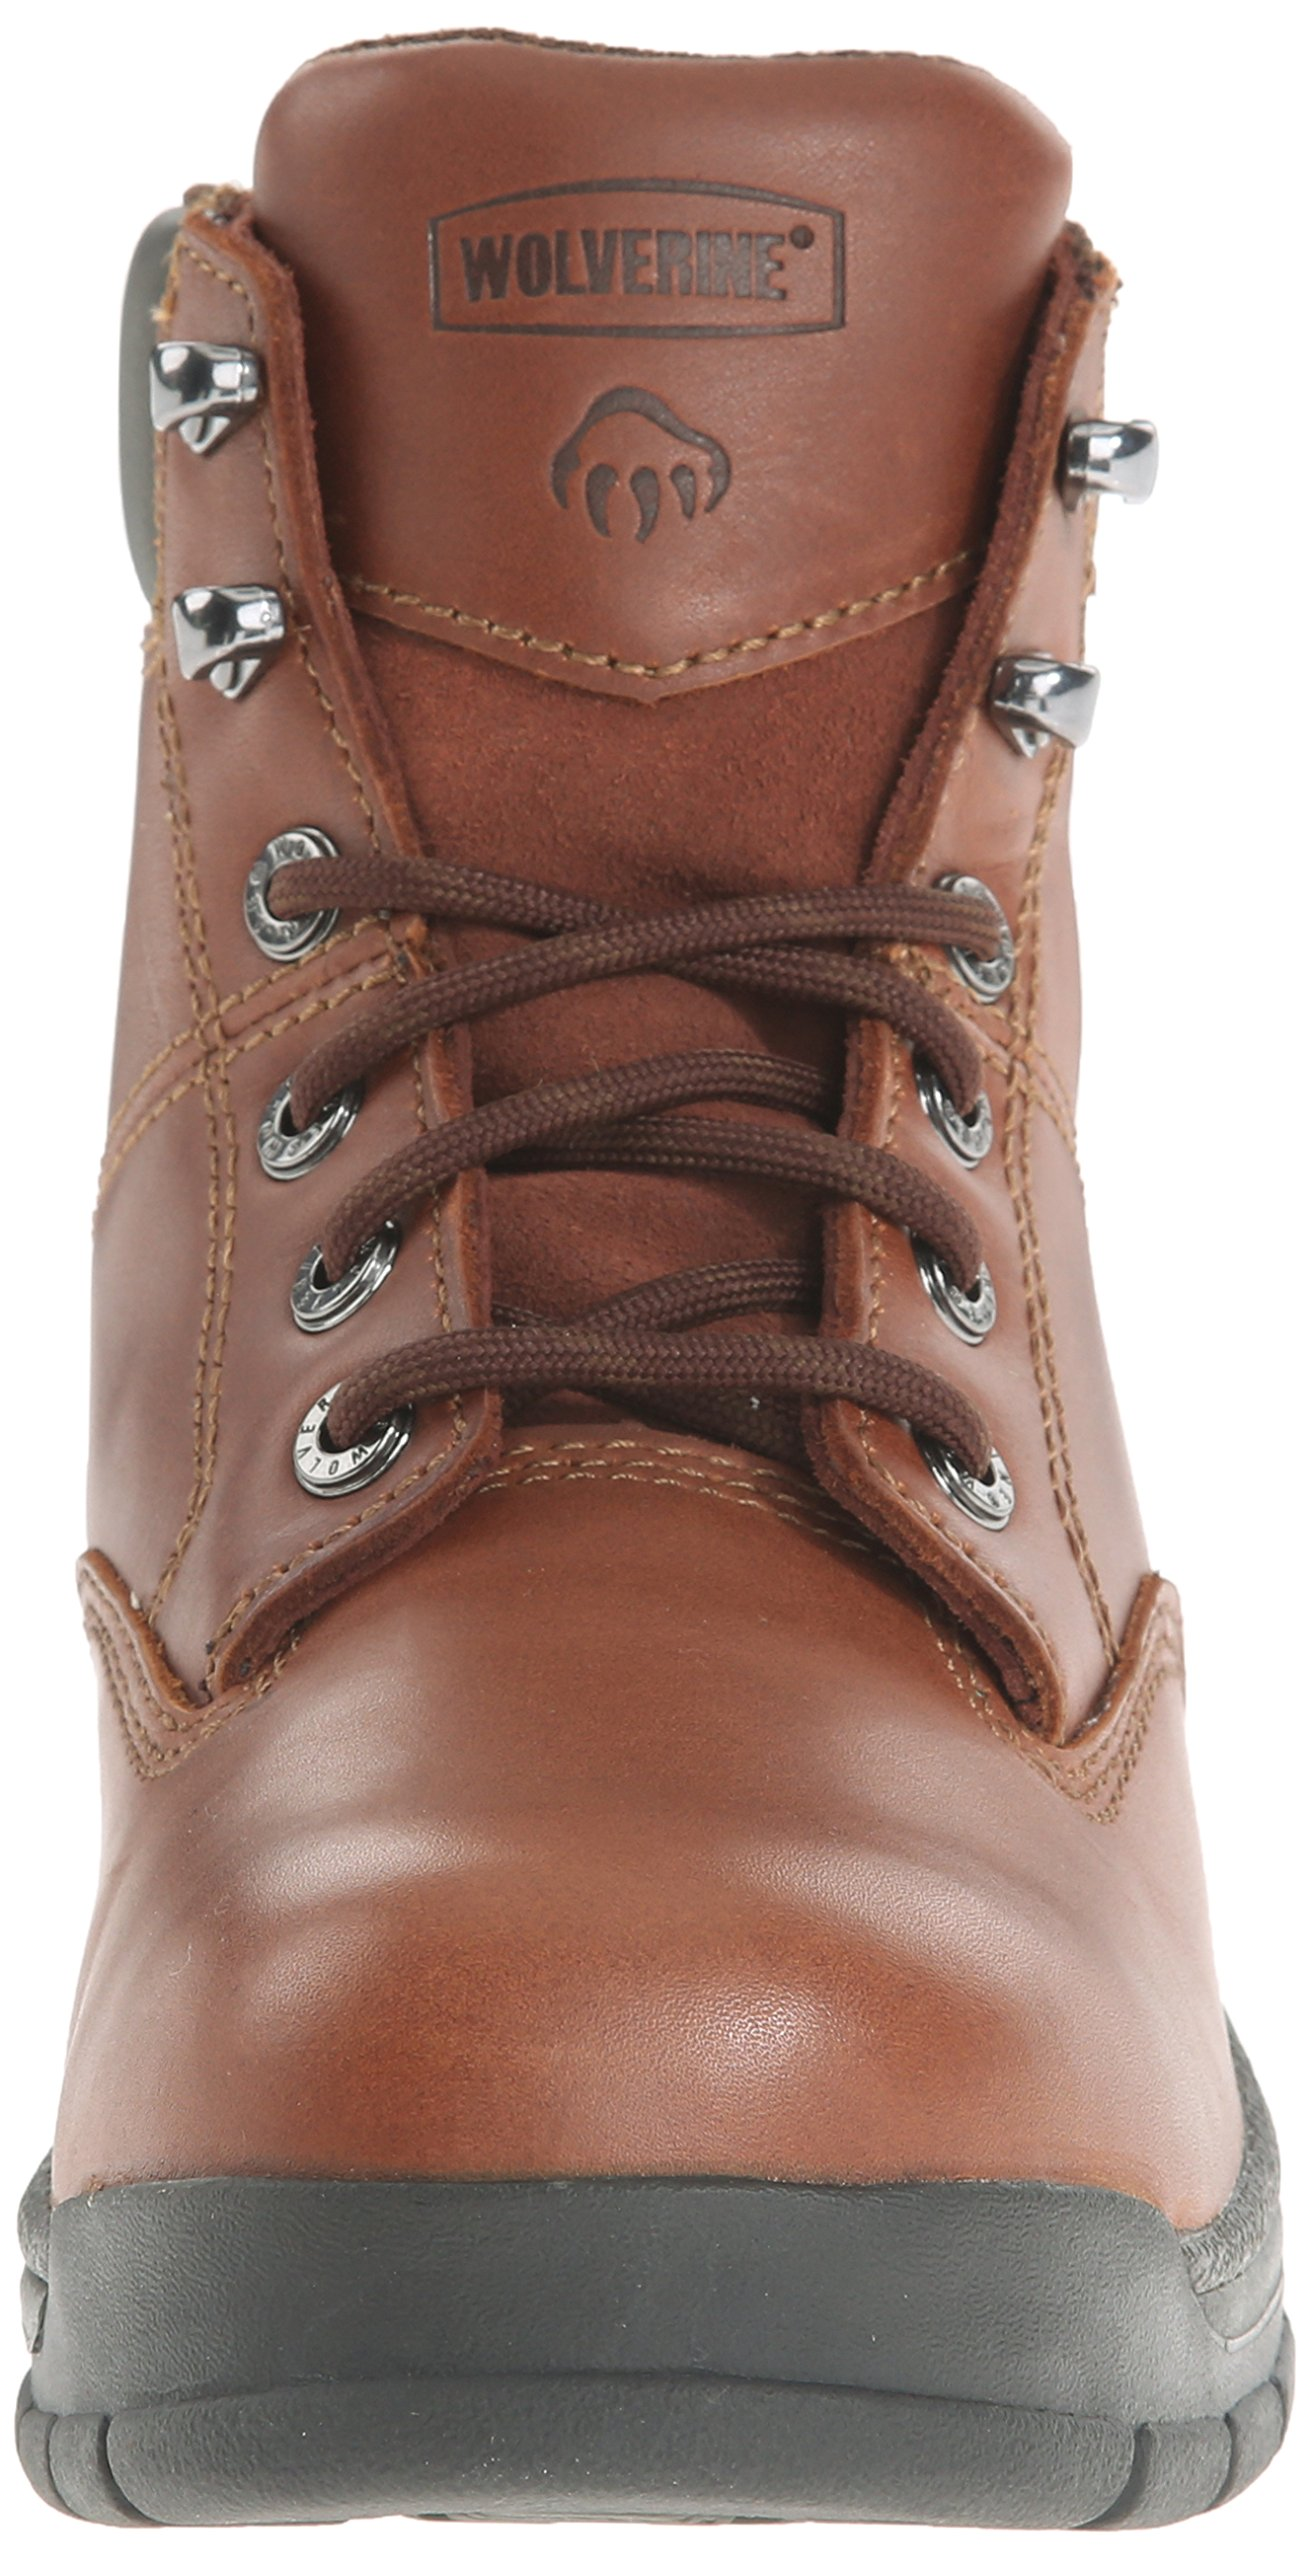 Wolverine Women's Harrison WMS 6'' LACE UP-W, Brown, 10 M US by Wolverine (Image #4)